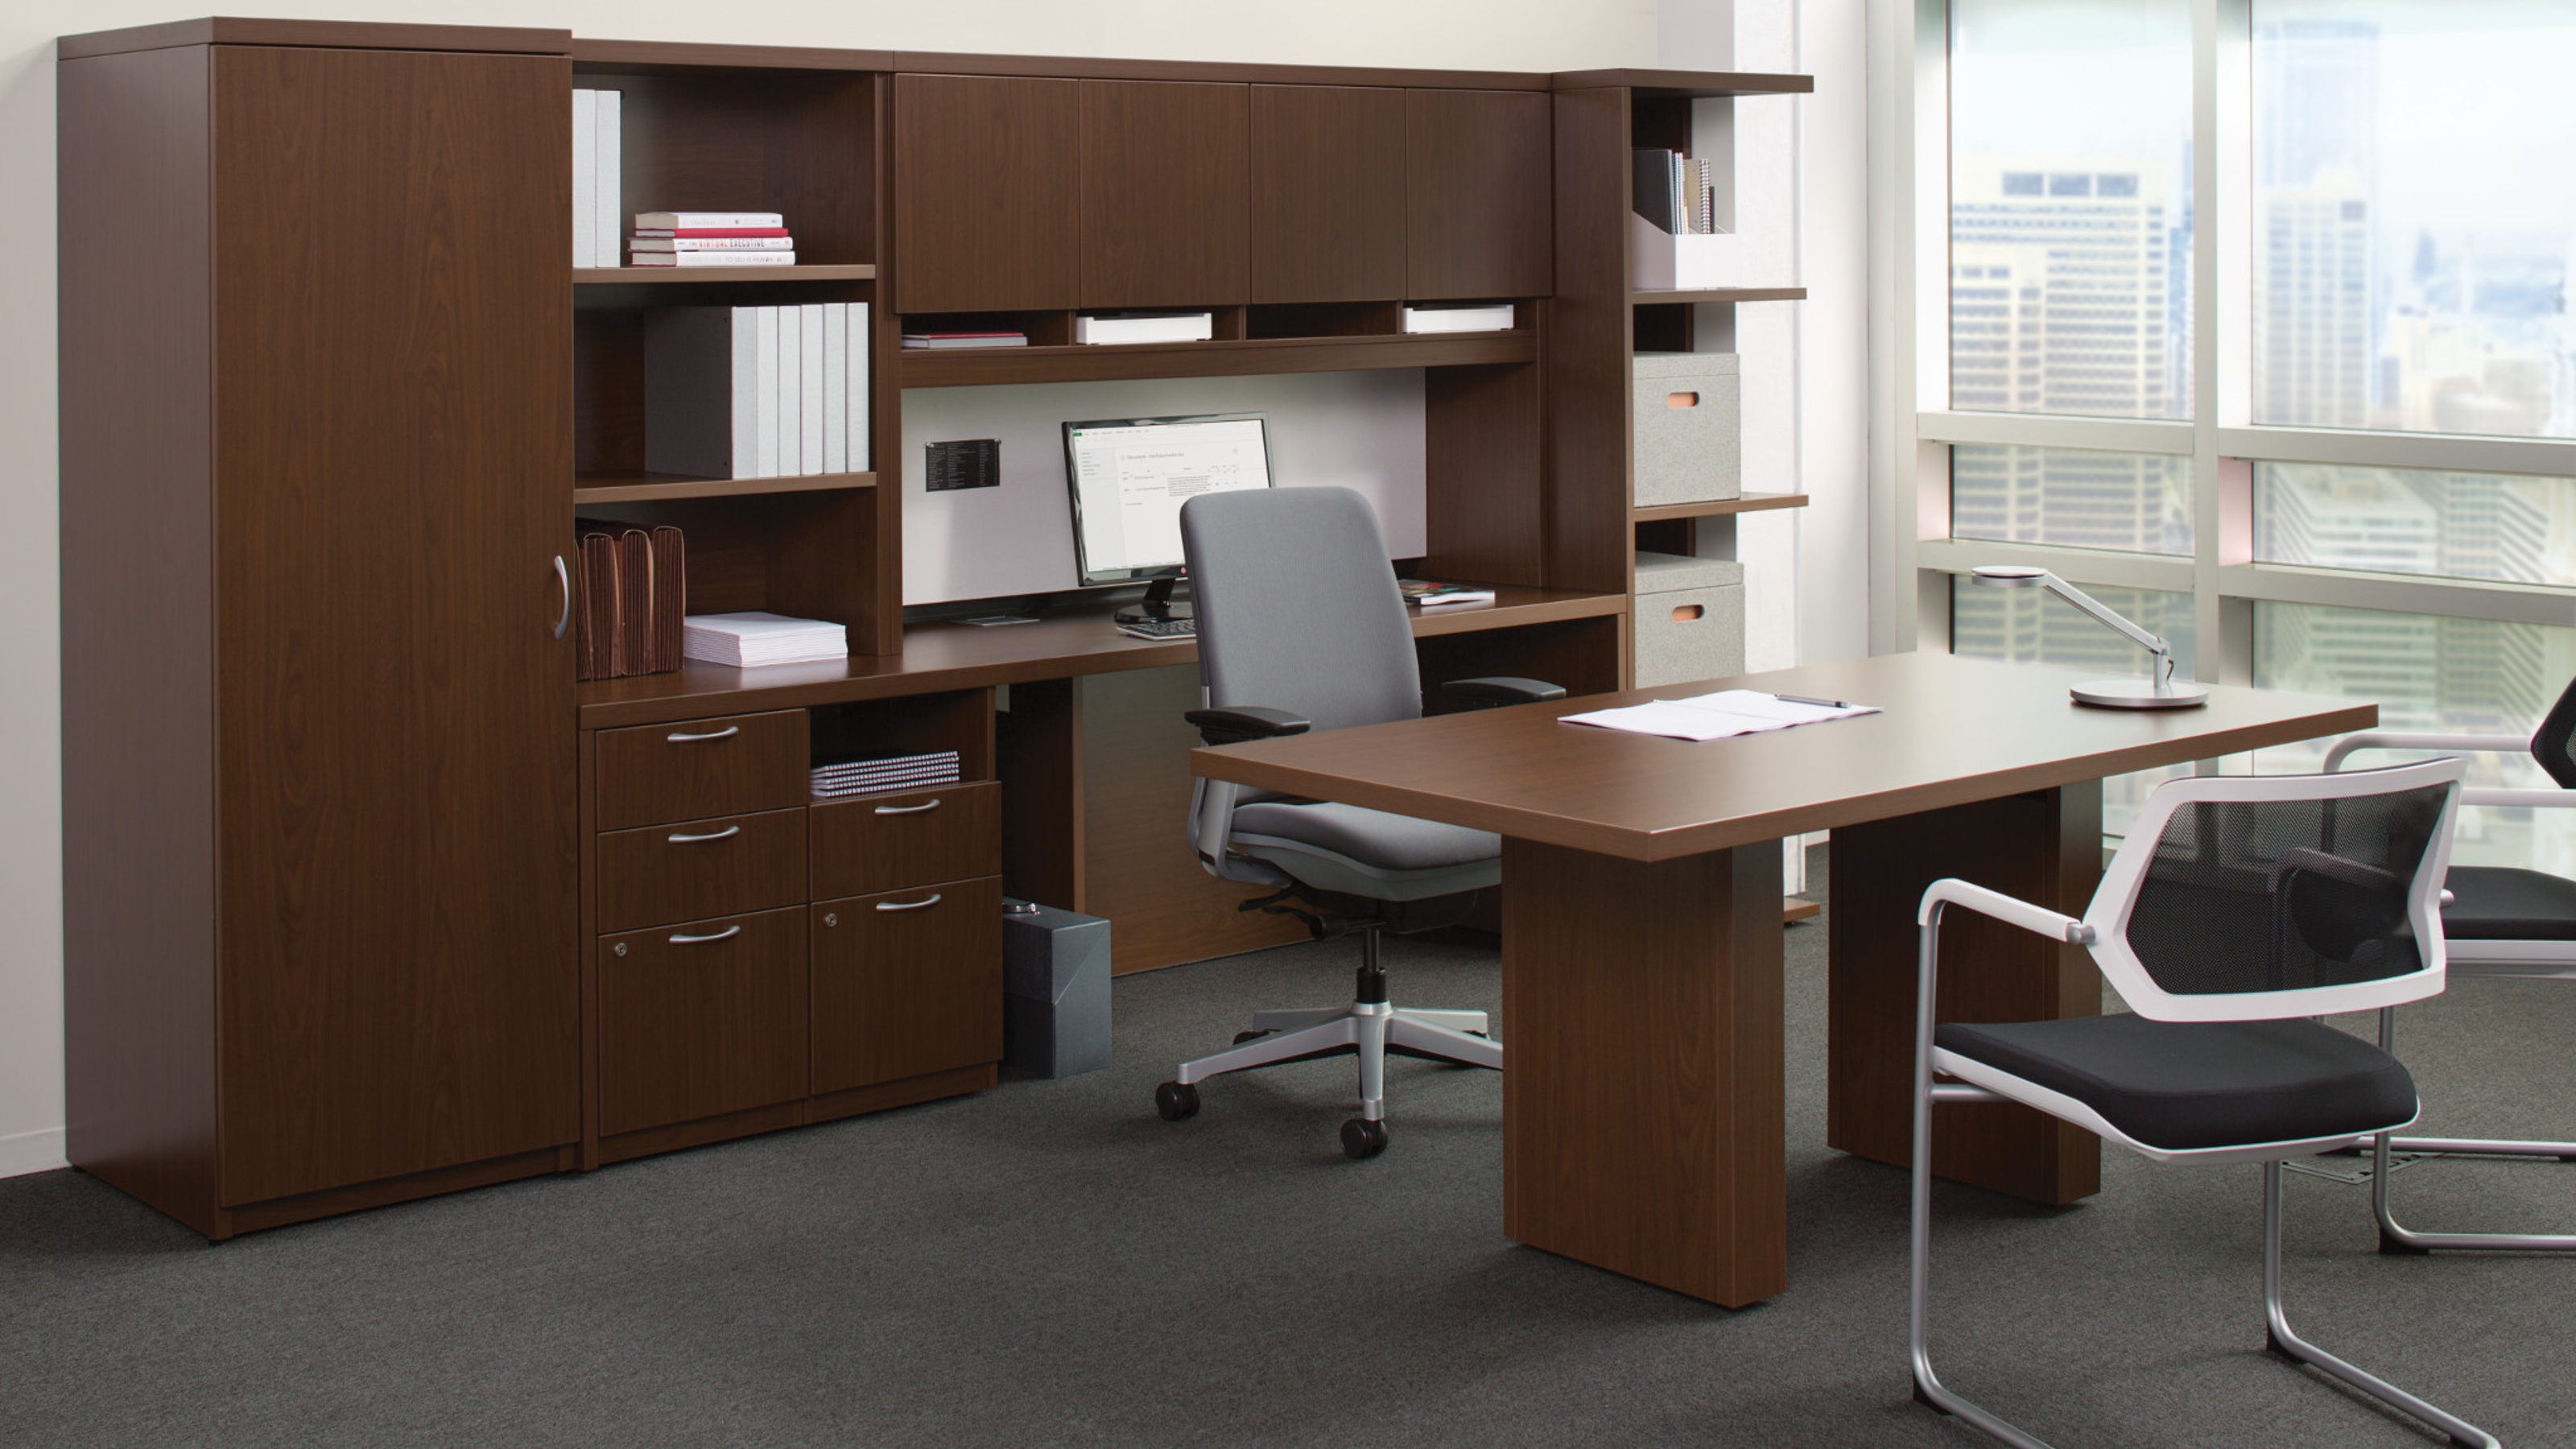 Office Desk With Storage Restaurant Interior Design